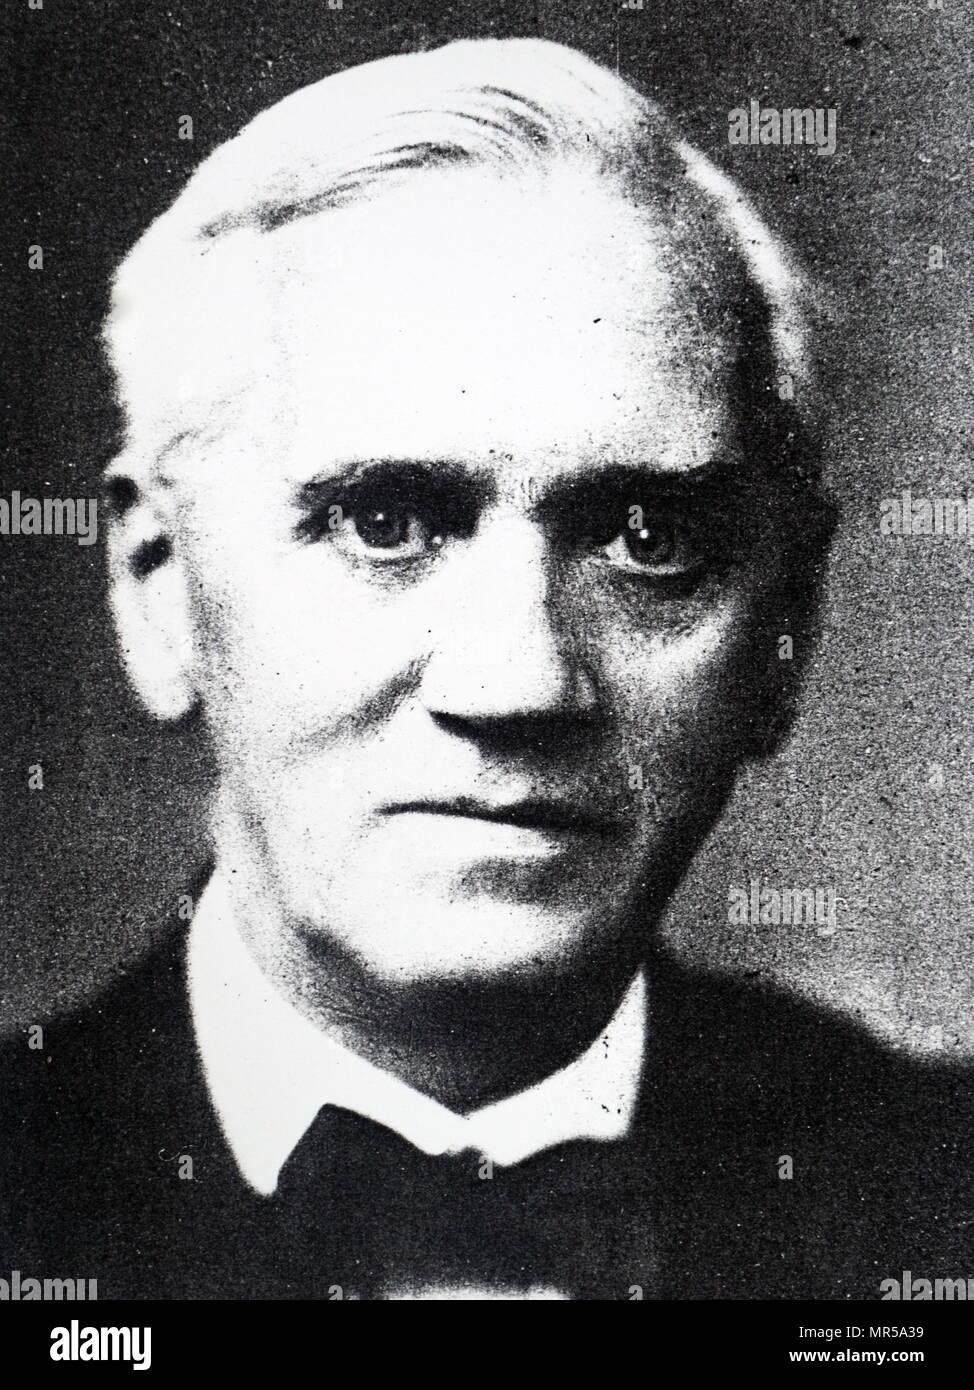 Photograph of Alexander Fleming (1881-1955) a Scottish physician, microbiologist, pharmacologist, and Nobel Prize-Winner in Medicine. Dated 20th century - Stock Image